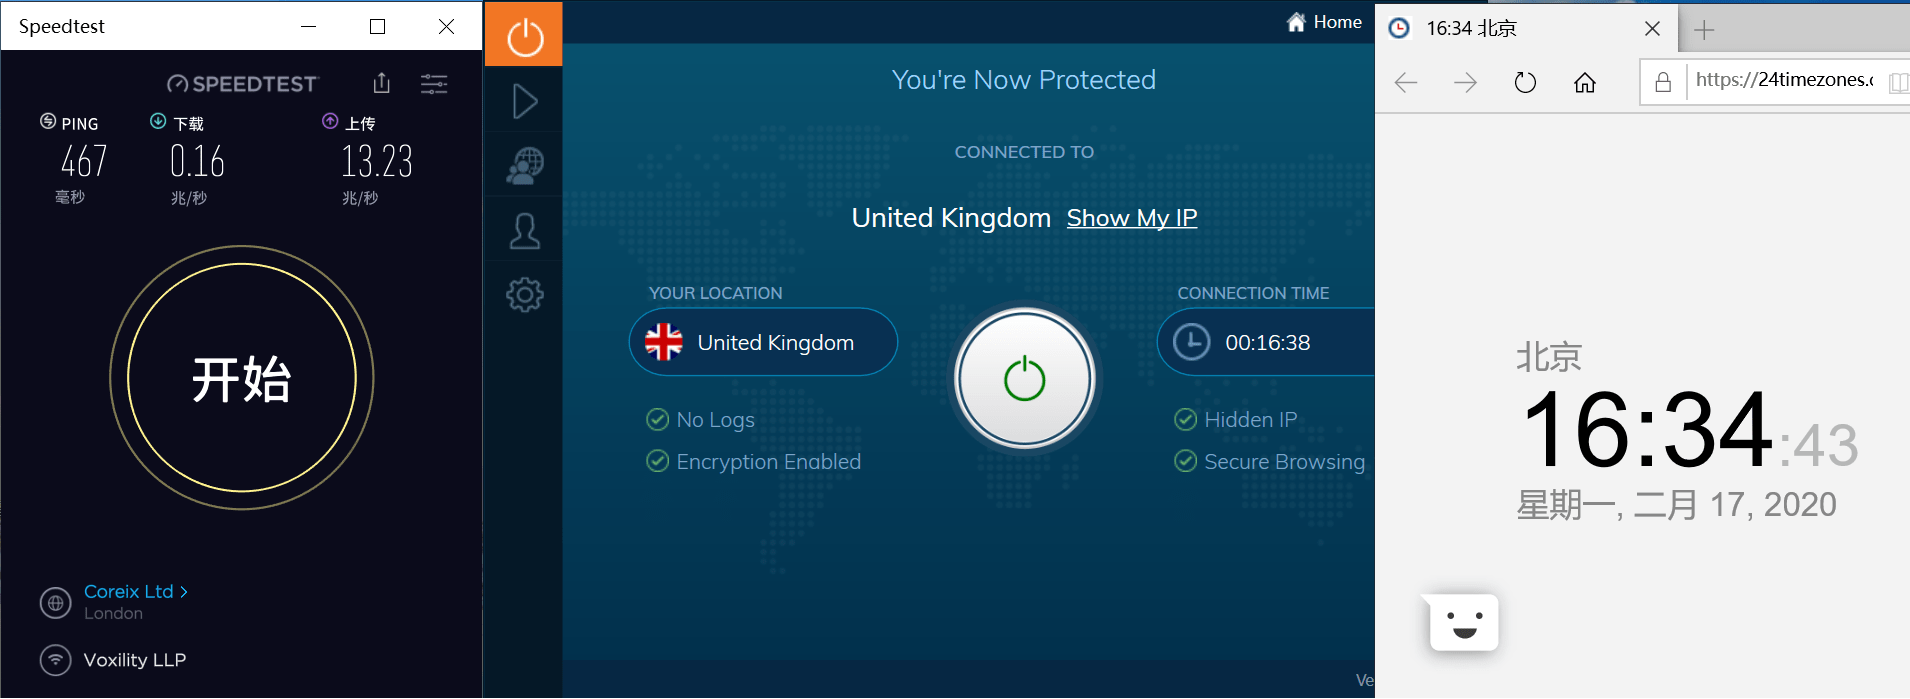 Windows10 IvacyVPN United Kingdom 中国VPN翻墙 科学上网 SpeedTest测试-20200217